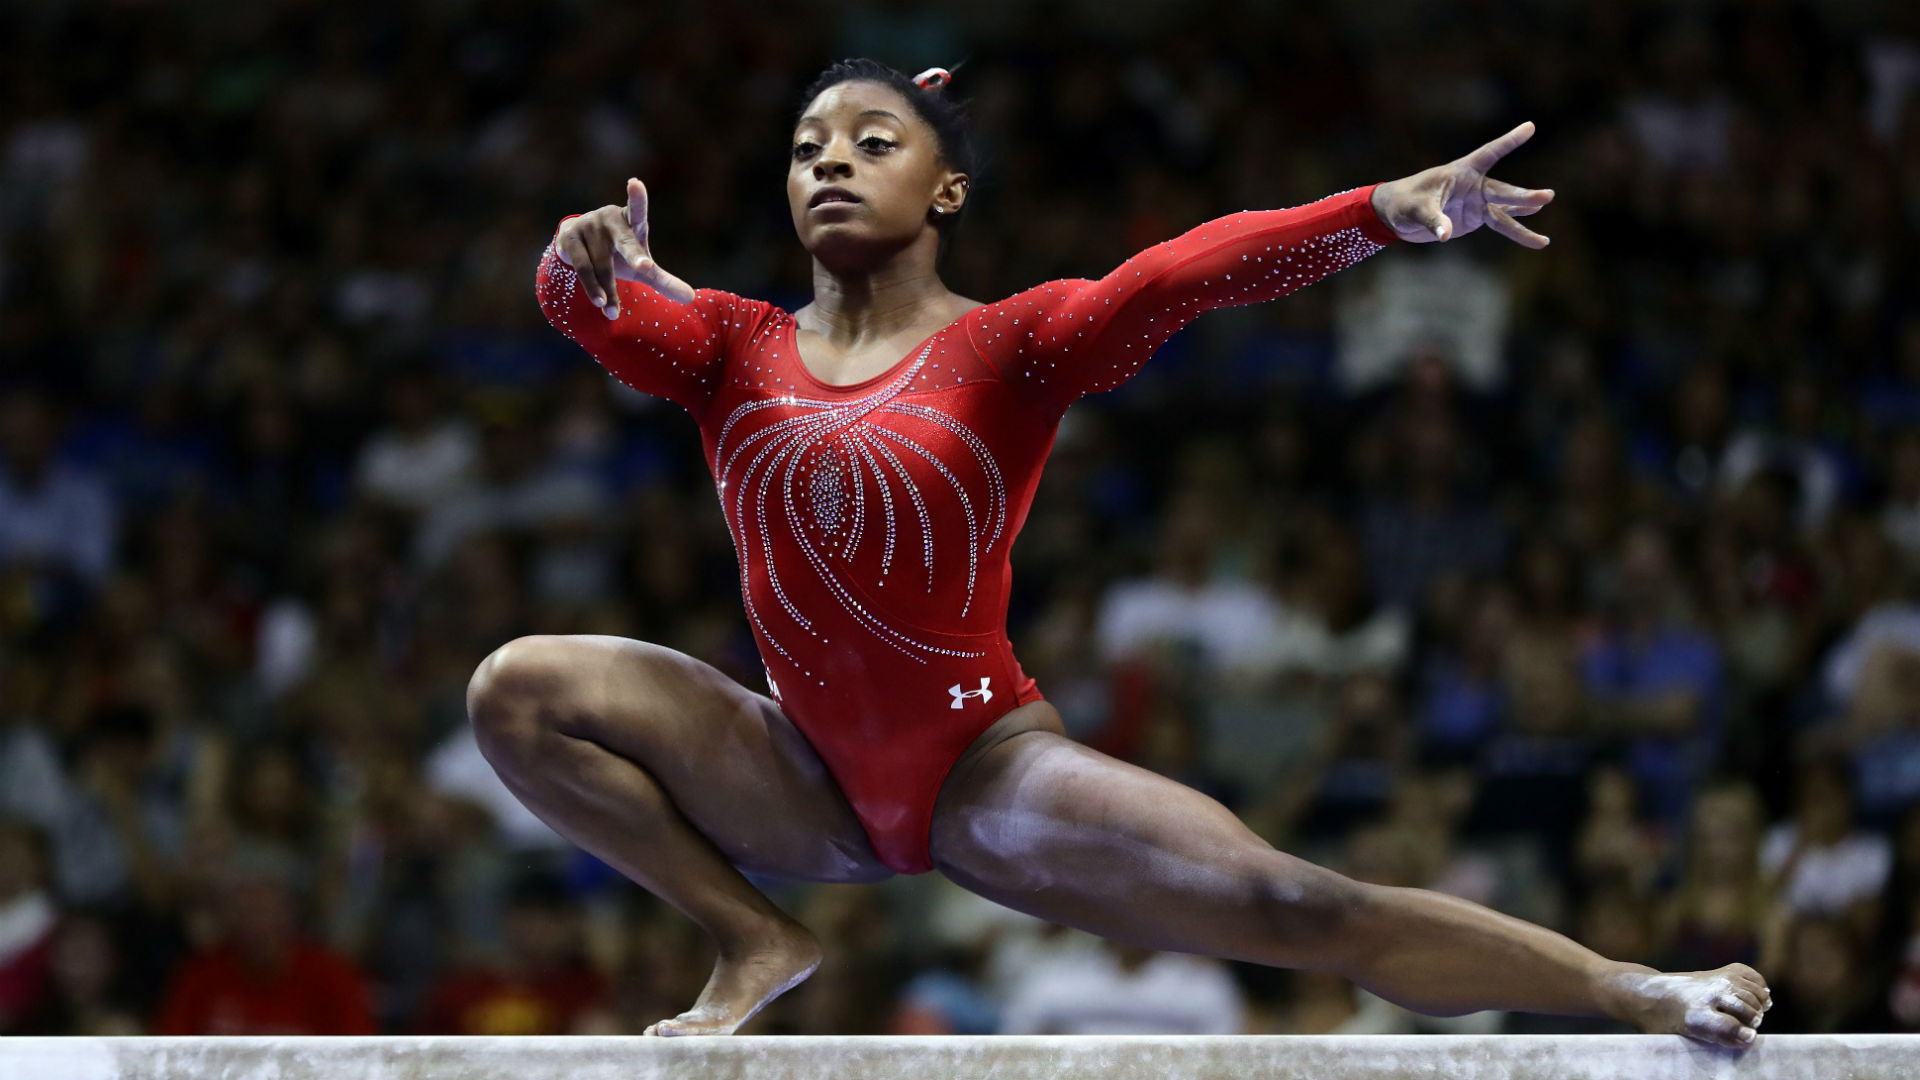 Rio Olympics 2016: What to know about each Team USA ...